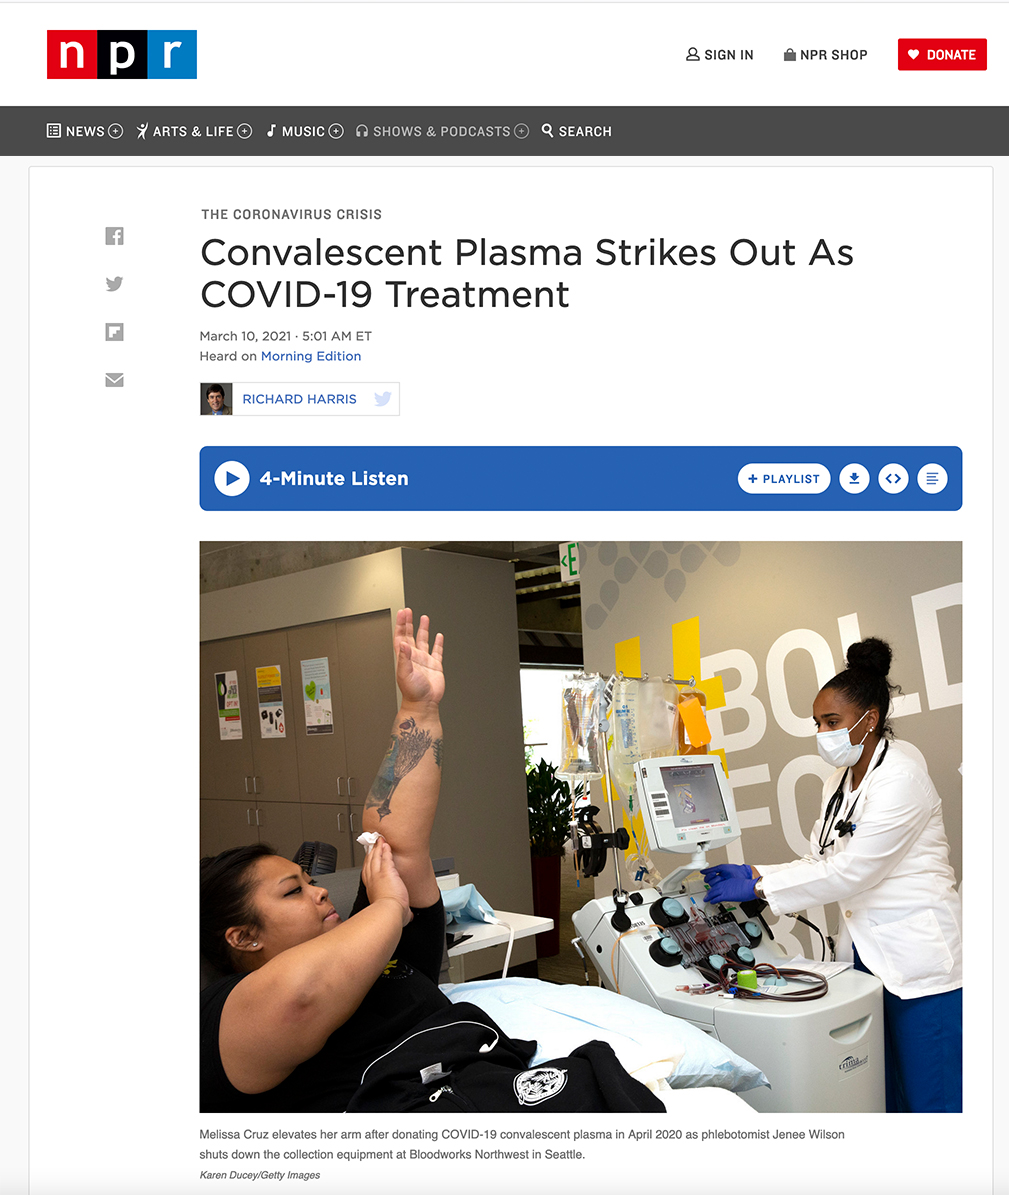 Convalescent Plasma Strikes Out As COVID-19 Treatment, photographed for Getty Images, published on NPR on March 10, 2021.